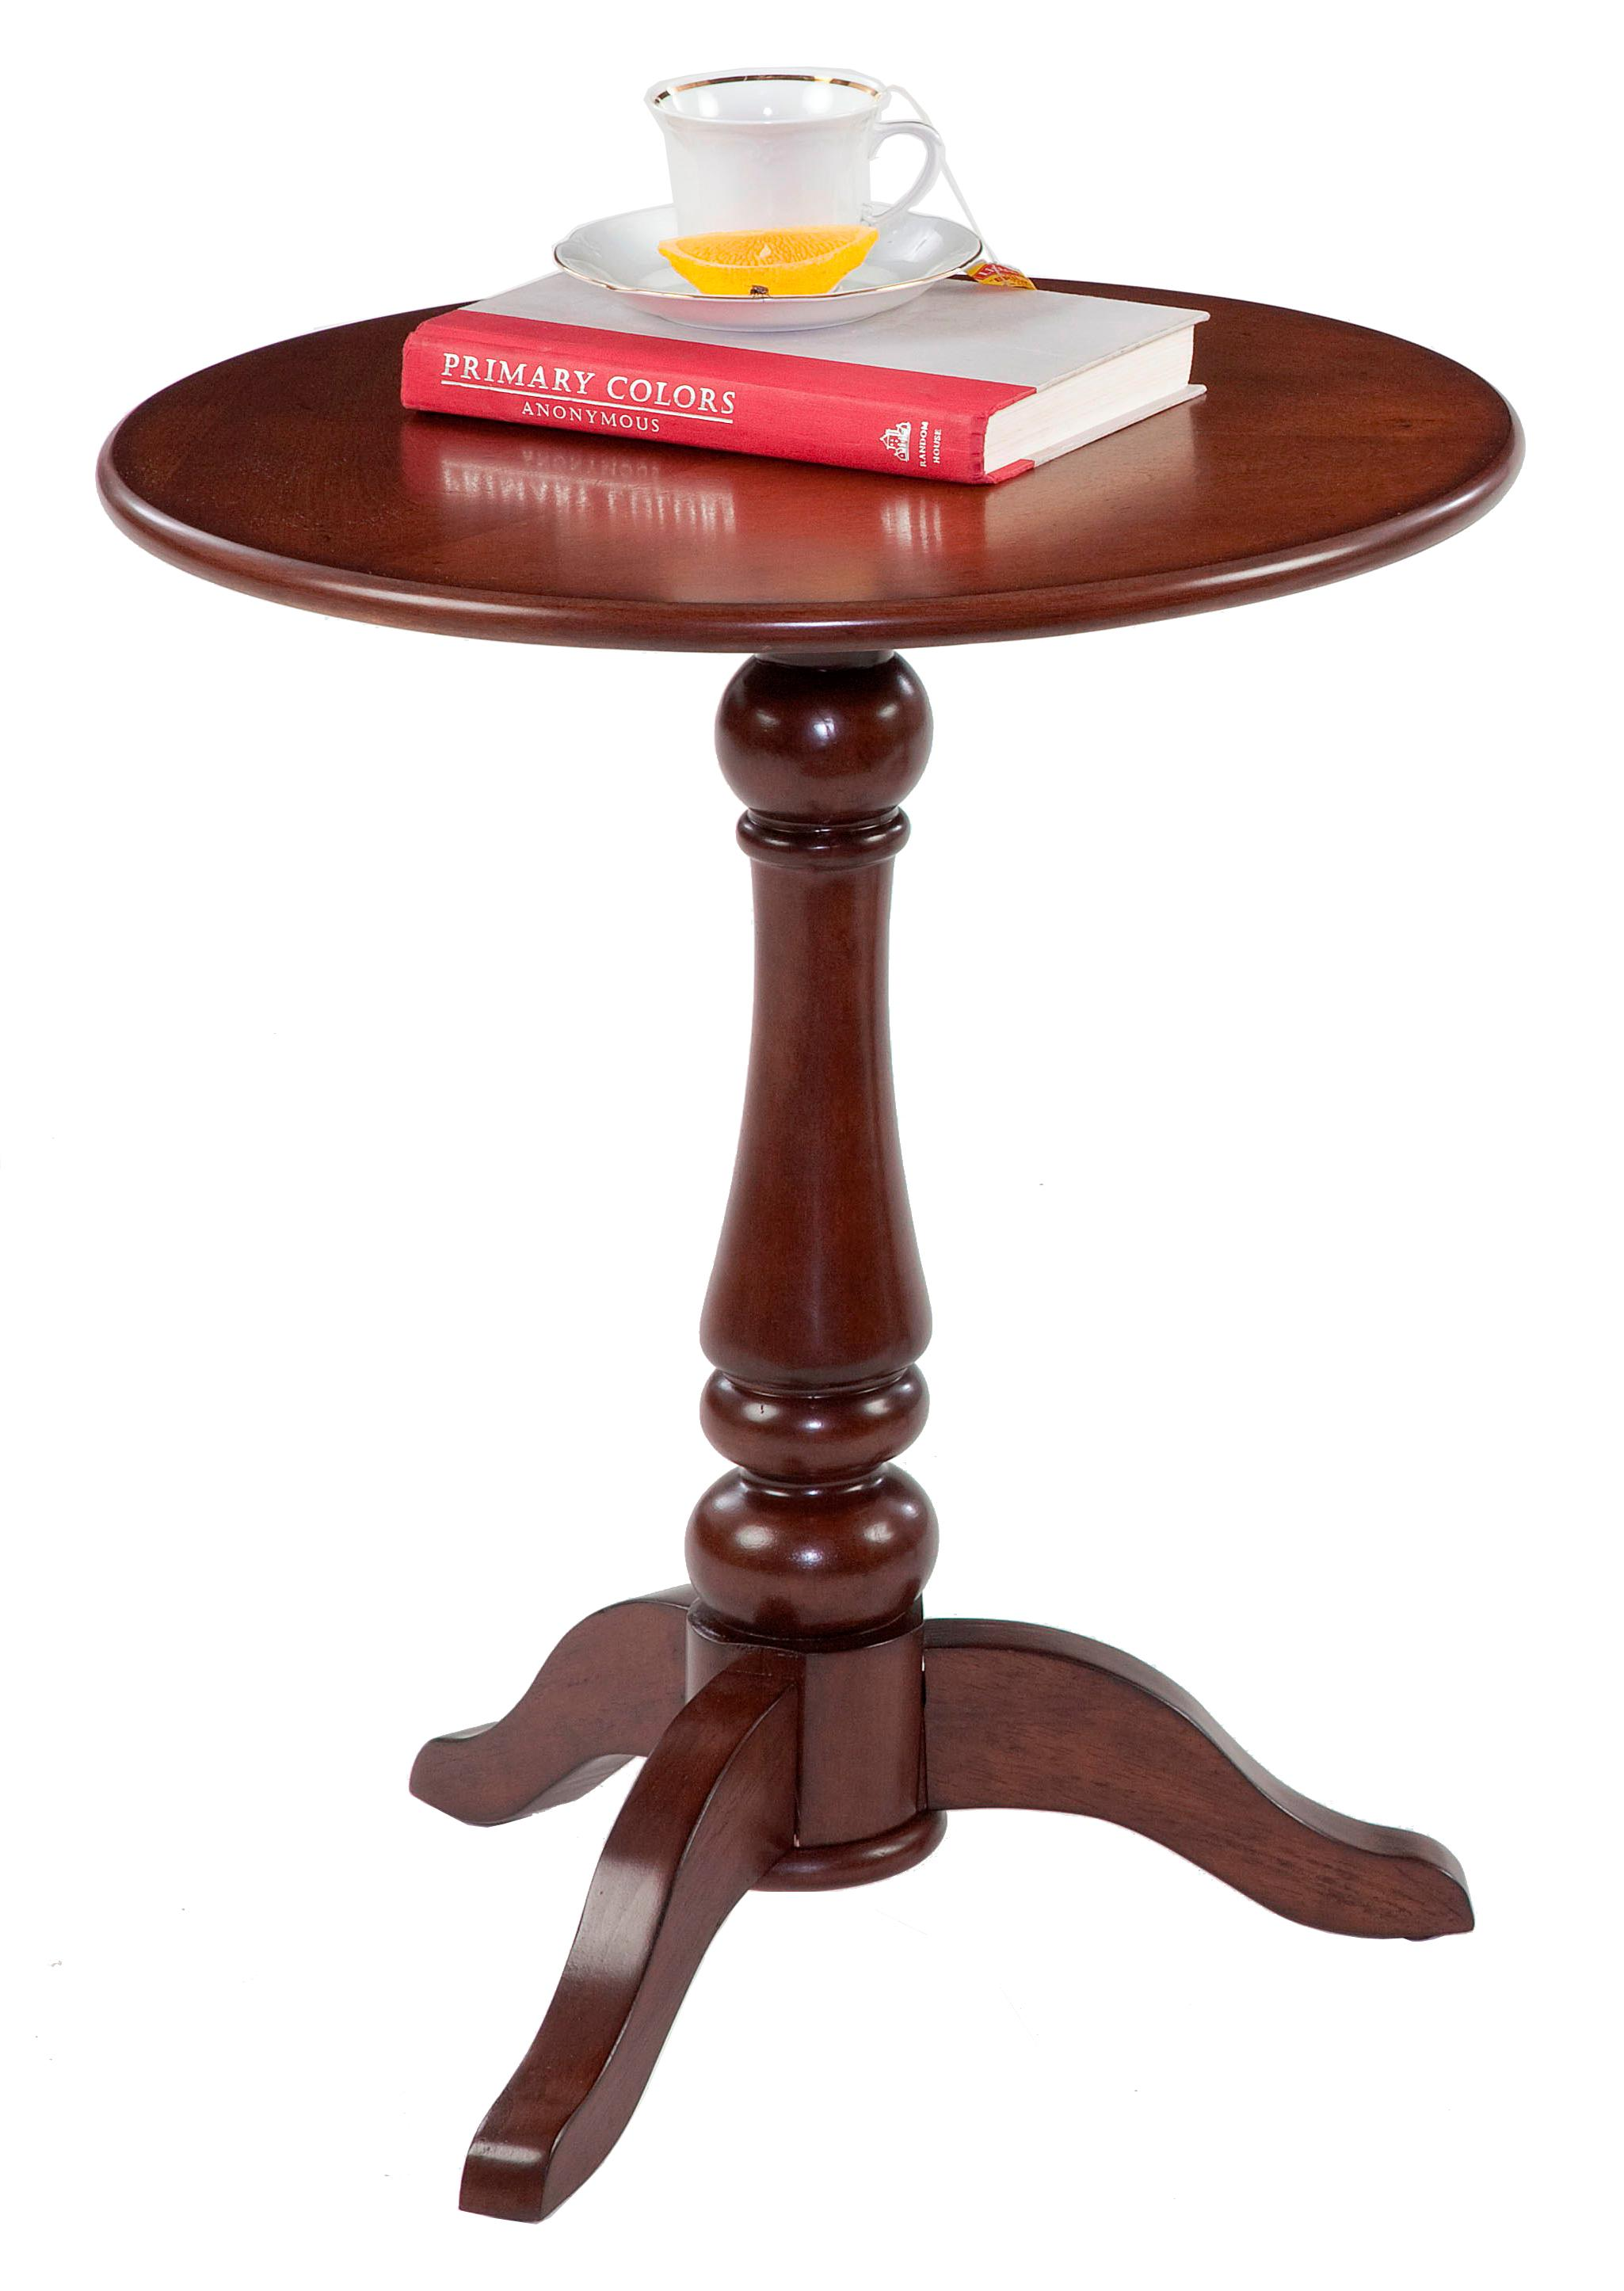 Progressive Furniture Chairsides Chairside Table - Item Number: P300-66